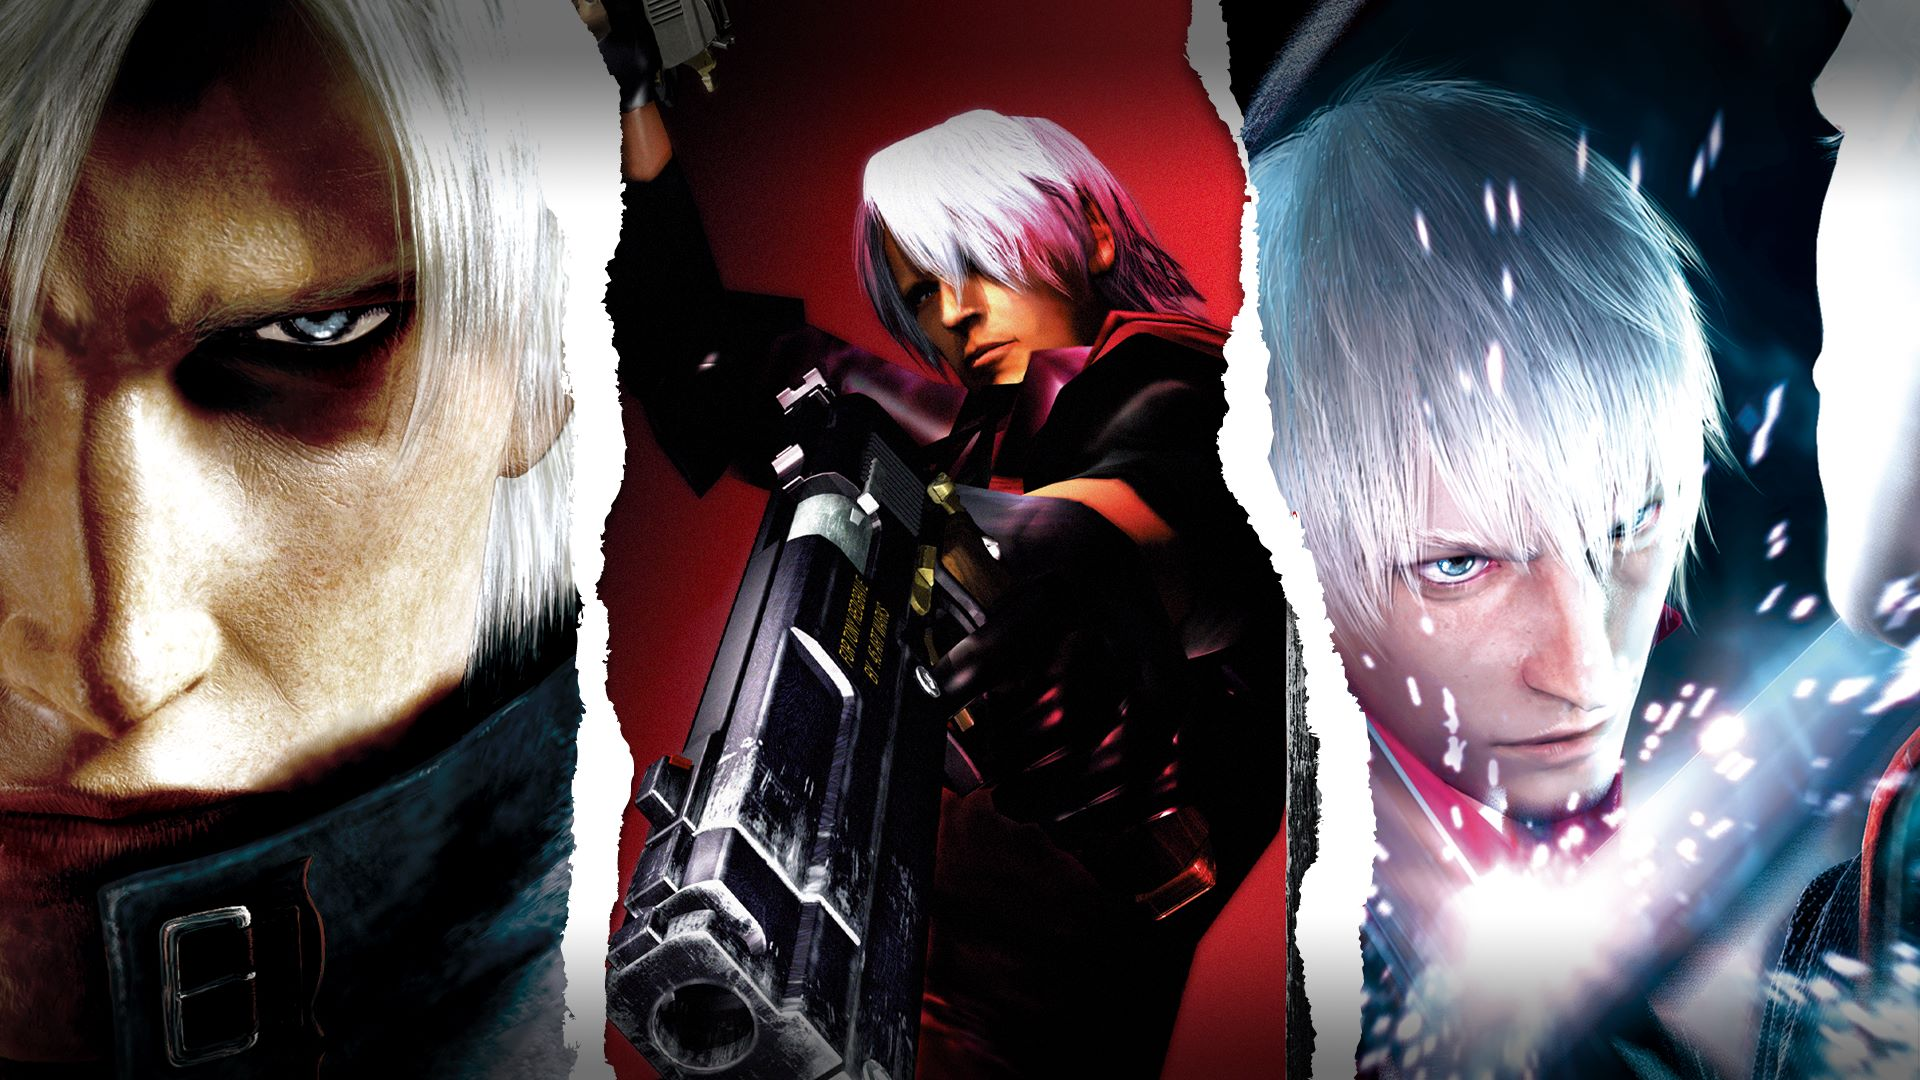 Devil May Cry Producer Confirms Major Change To Series Timeline